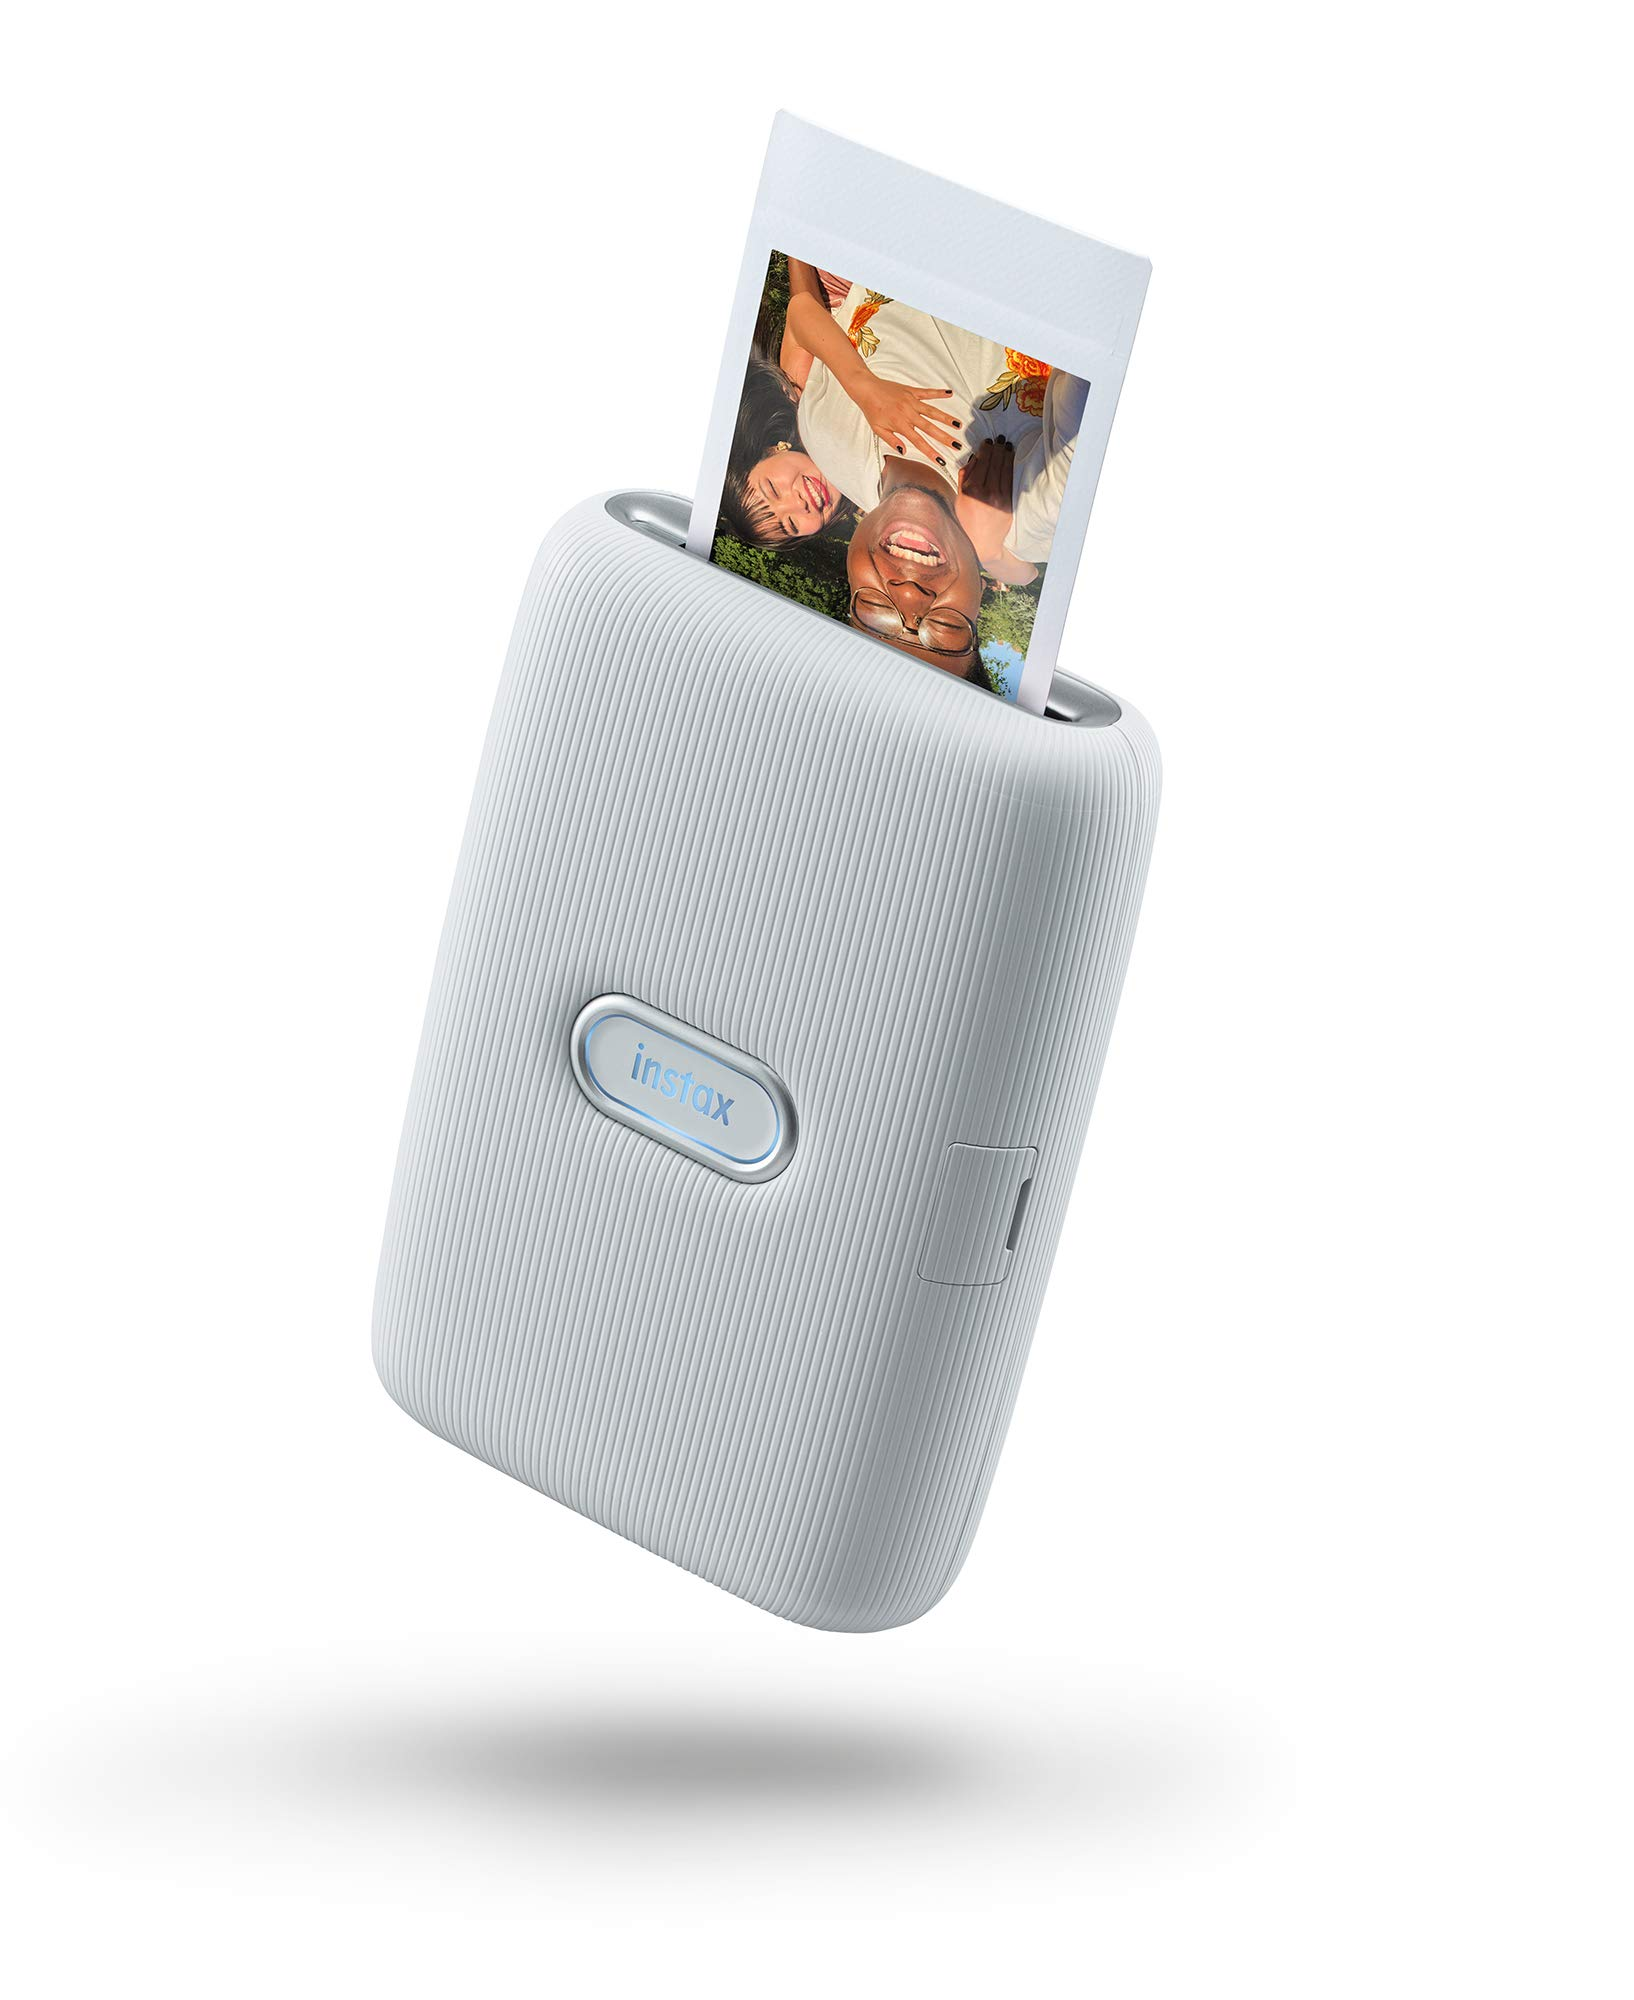 Fujifilm Instax Mini Link Smartphone Printer - Ash White by Fujifilm